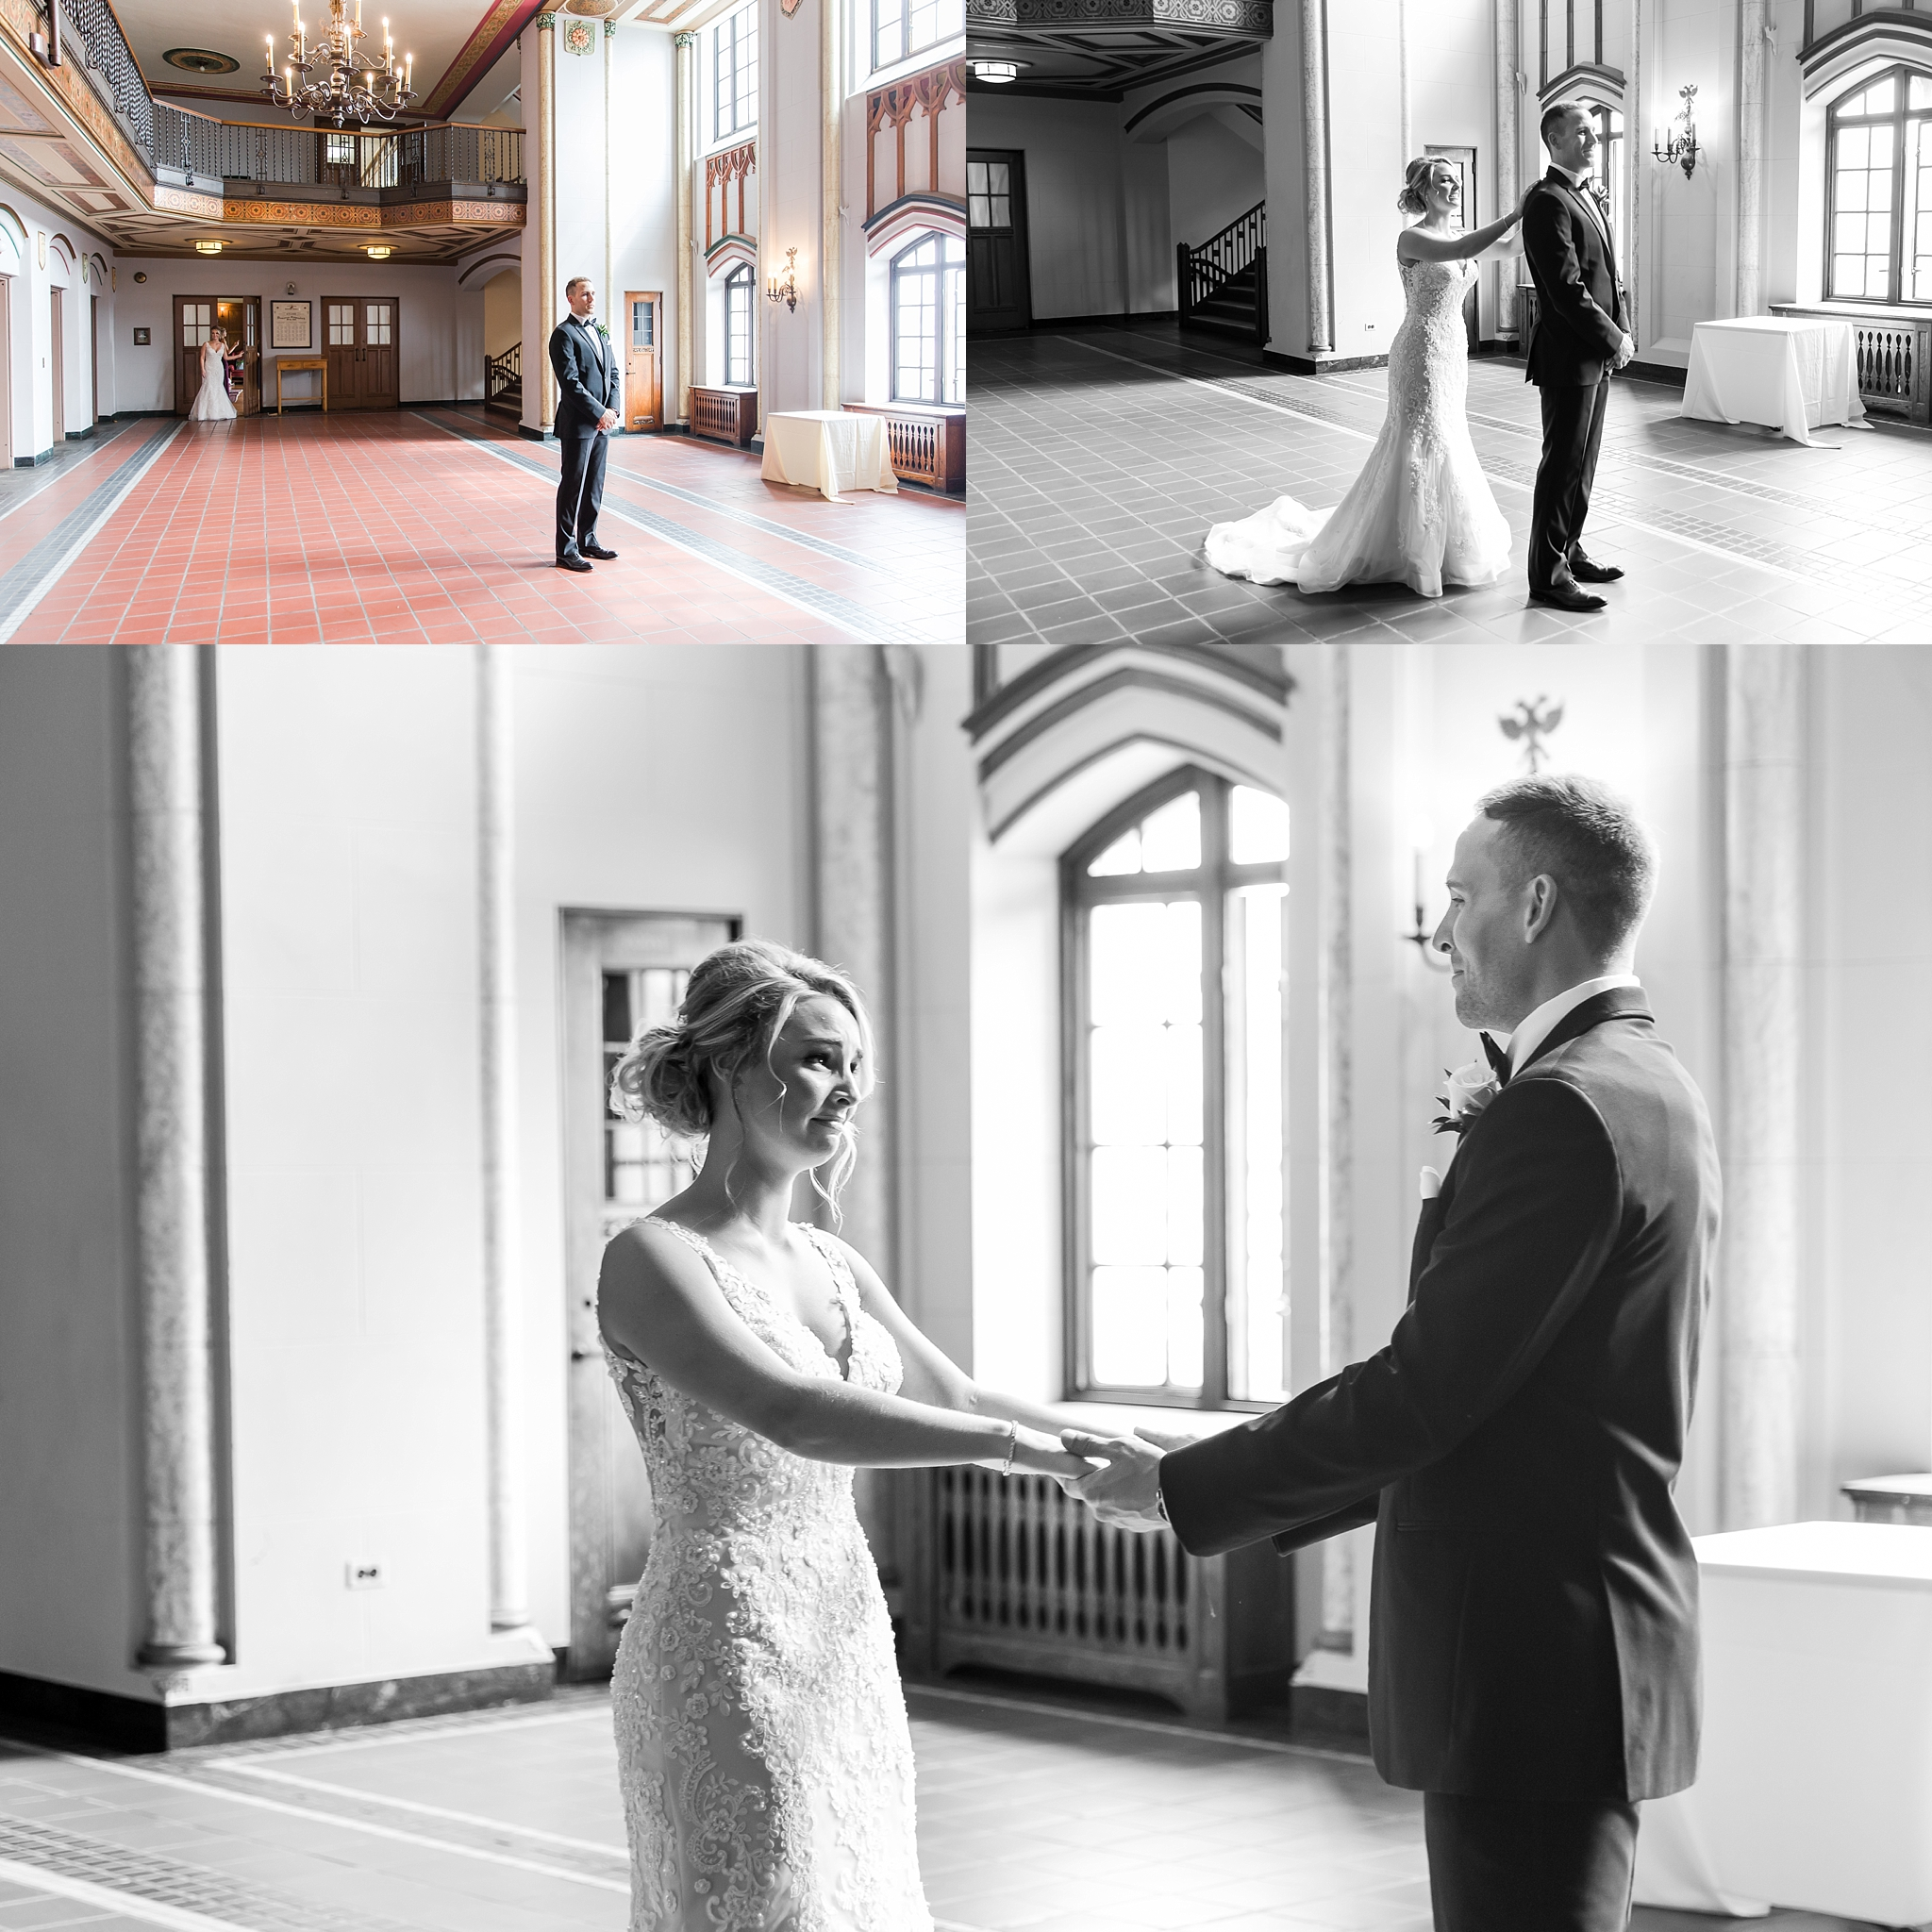 candid-romantic-wedding-photos-at-the-masonic-temple-belle-isle-detroit-institute-of-arts-in-detroit-michigan-by-courtney-carolyn-photography_0020.jpg